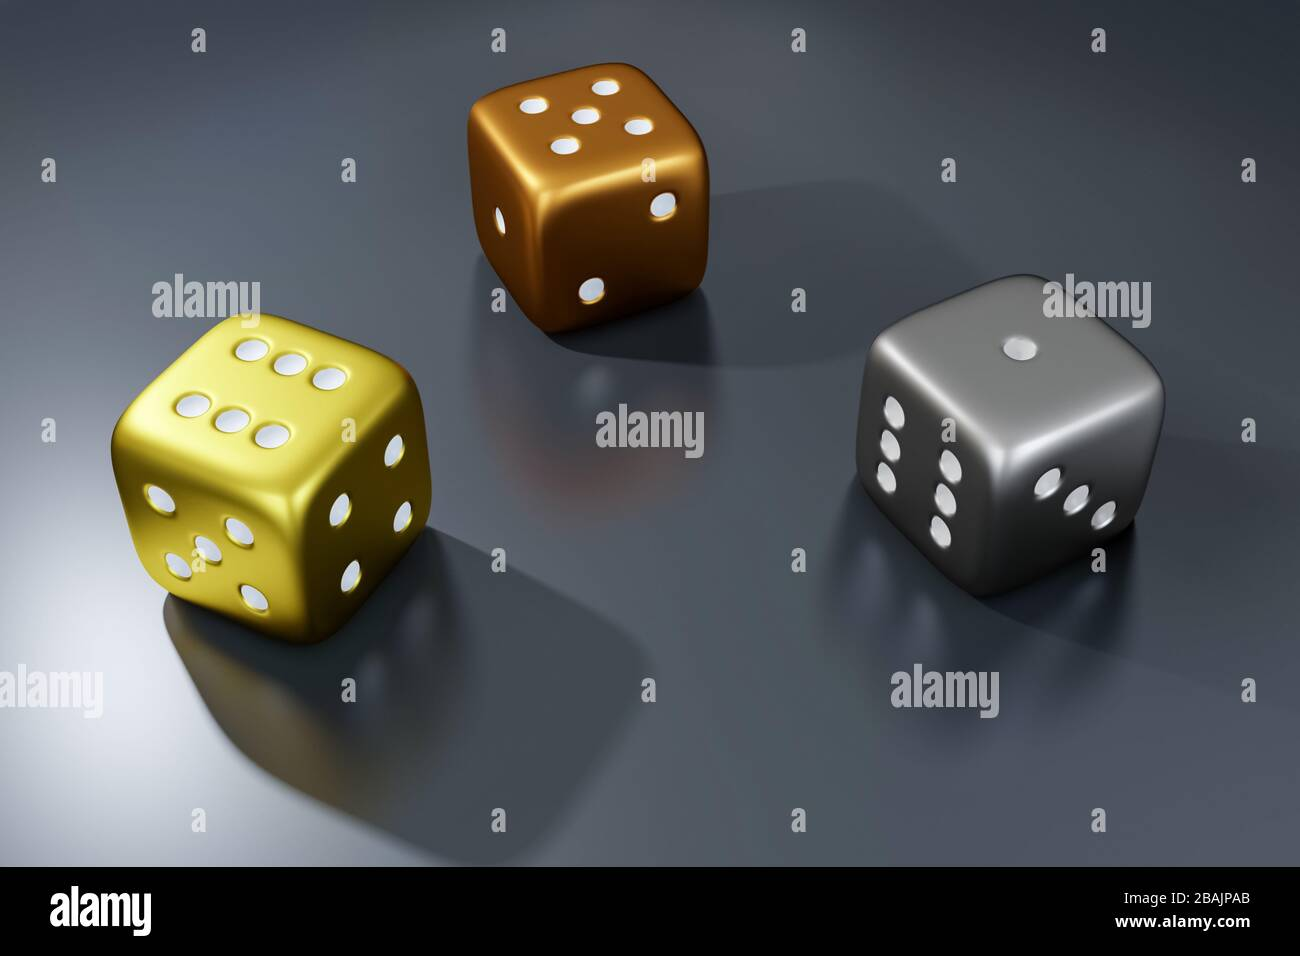 Poker Dice View Of Golden Silver And Bronze Dice Casino Dice On Grey Background Online Casino Dice Gambling Concept Isolated On Grey Stock Photo Alamy